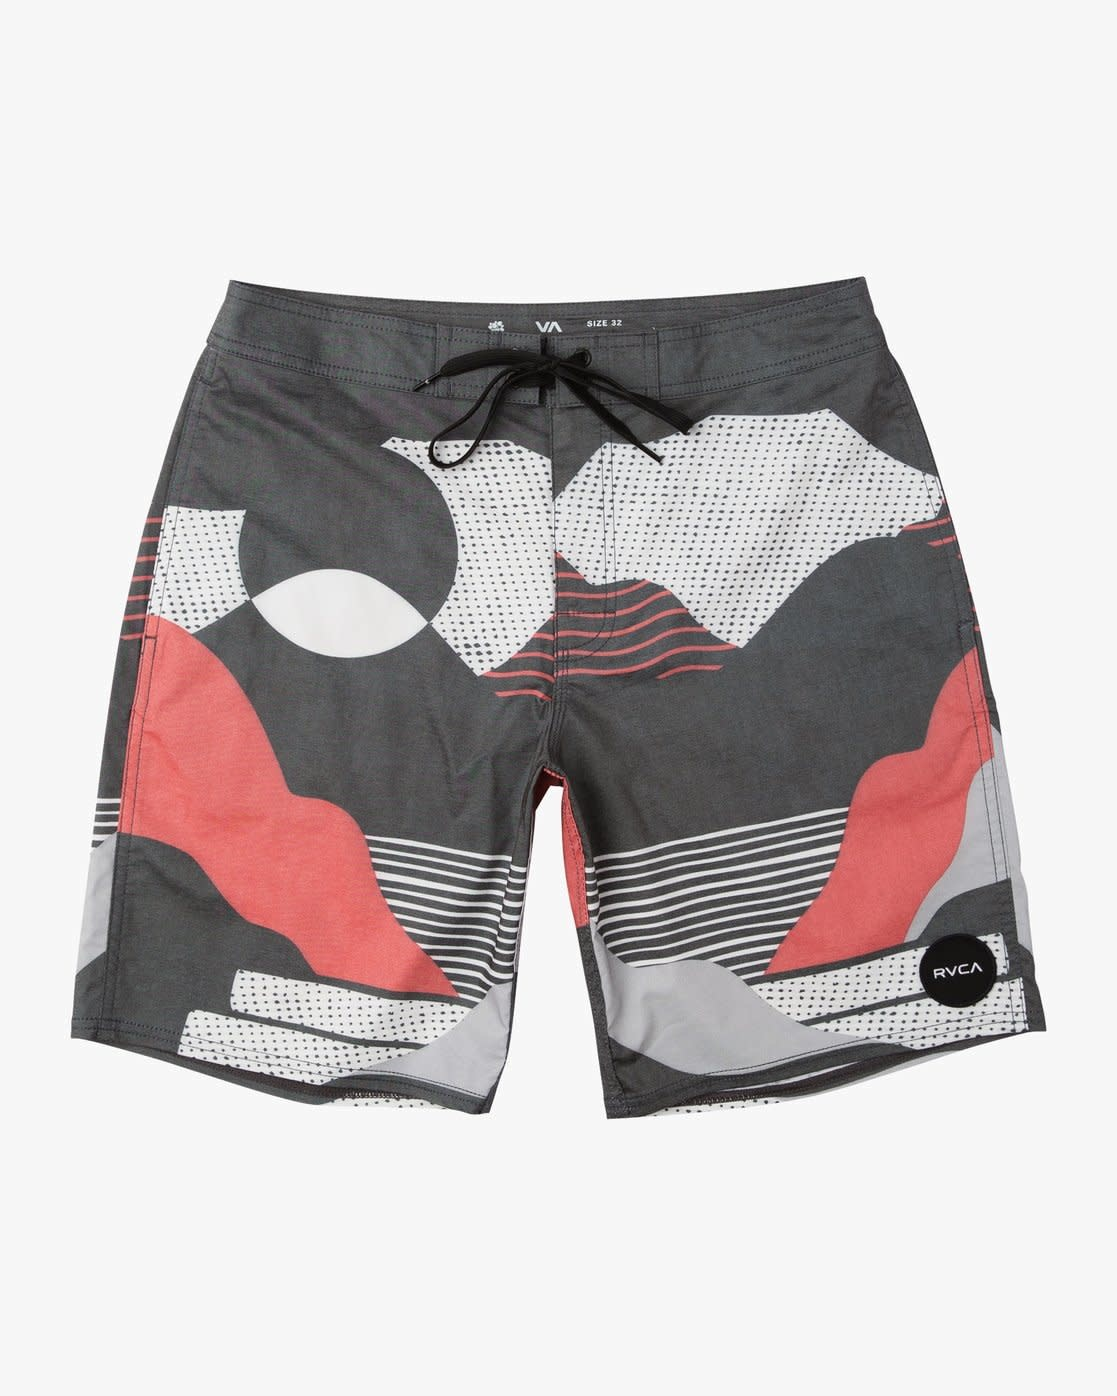 RVCA Outlook Trunk Black